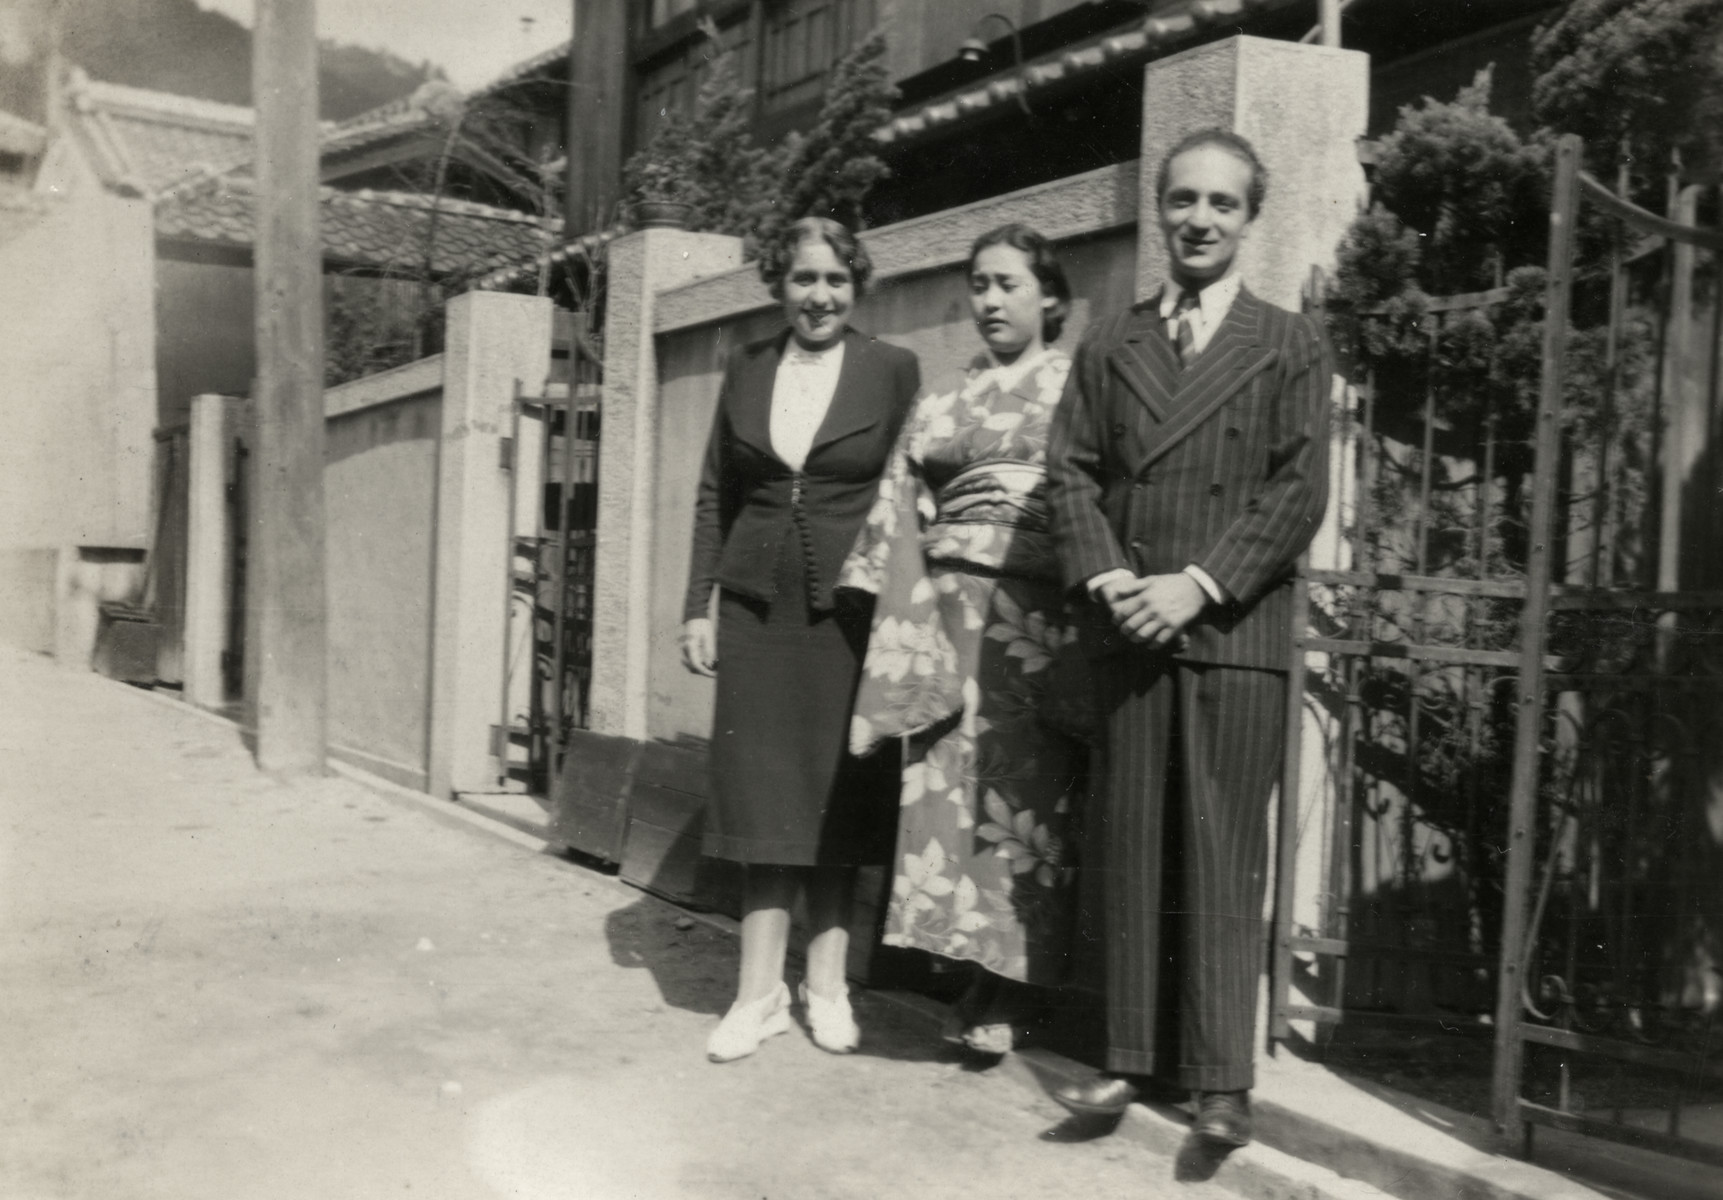 Kurt Marcus poses with his aunt Erne Rosenbaum and a Japanese woman in Kobe.